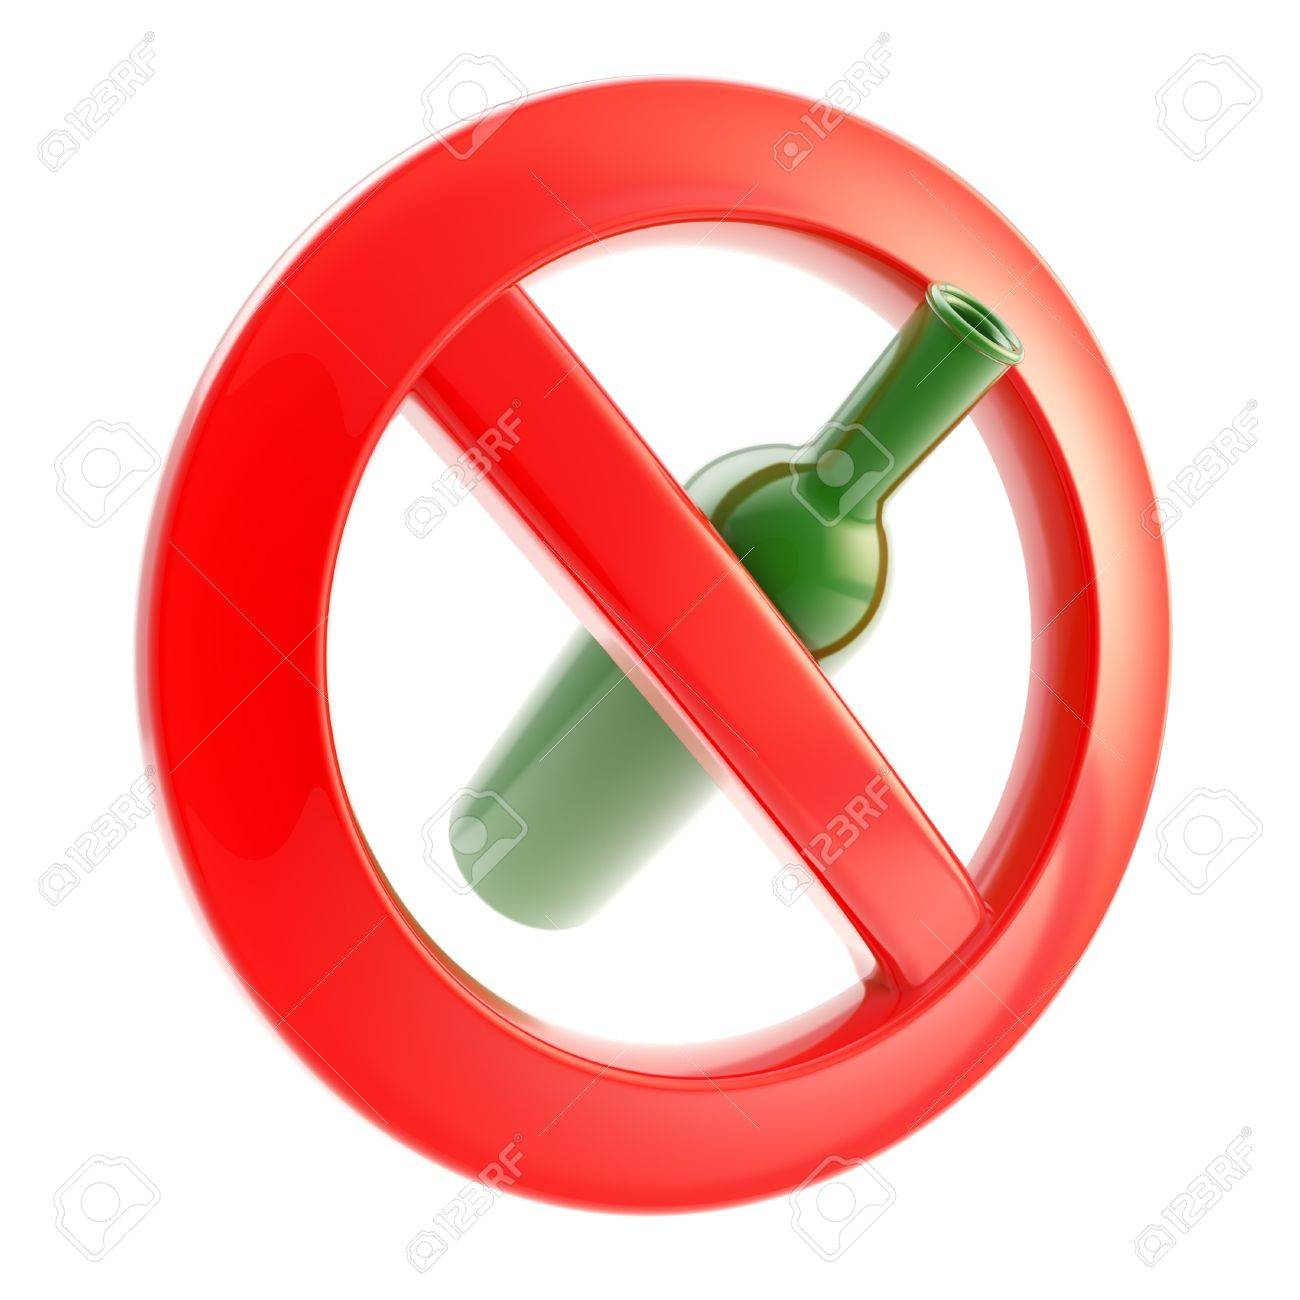 Drinking is not allowed forbidden sign Stock Photo - 13243451